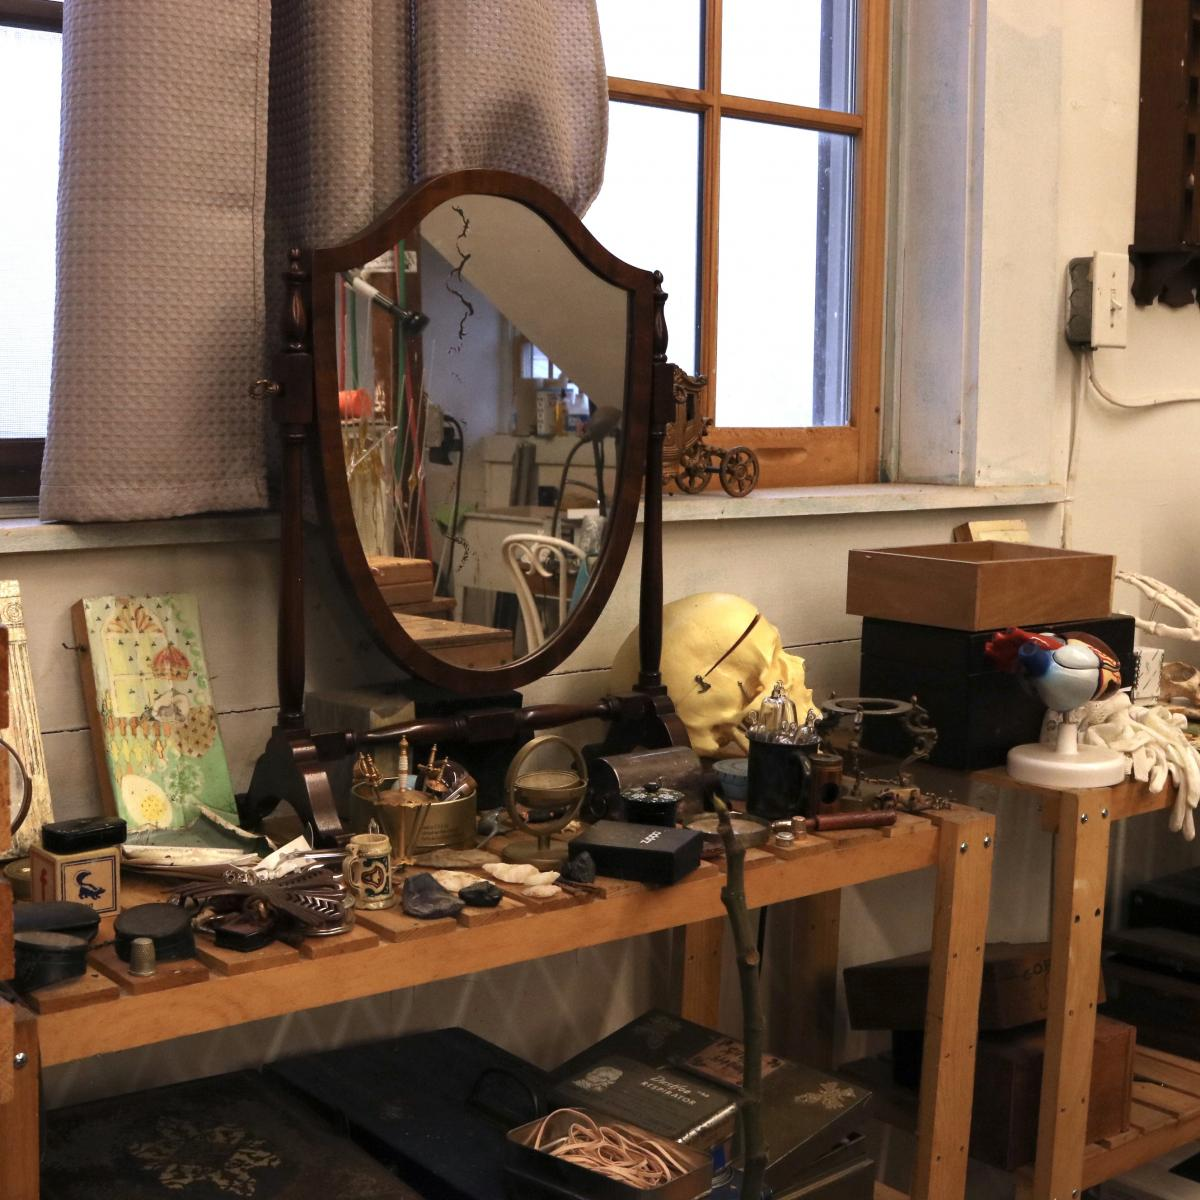 A mirror and objects the artist finds inspiring